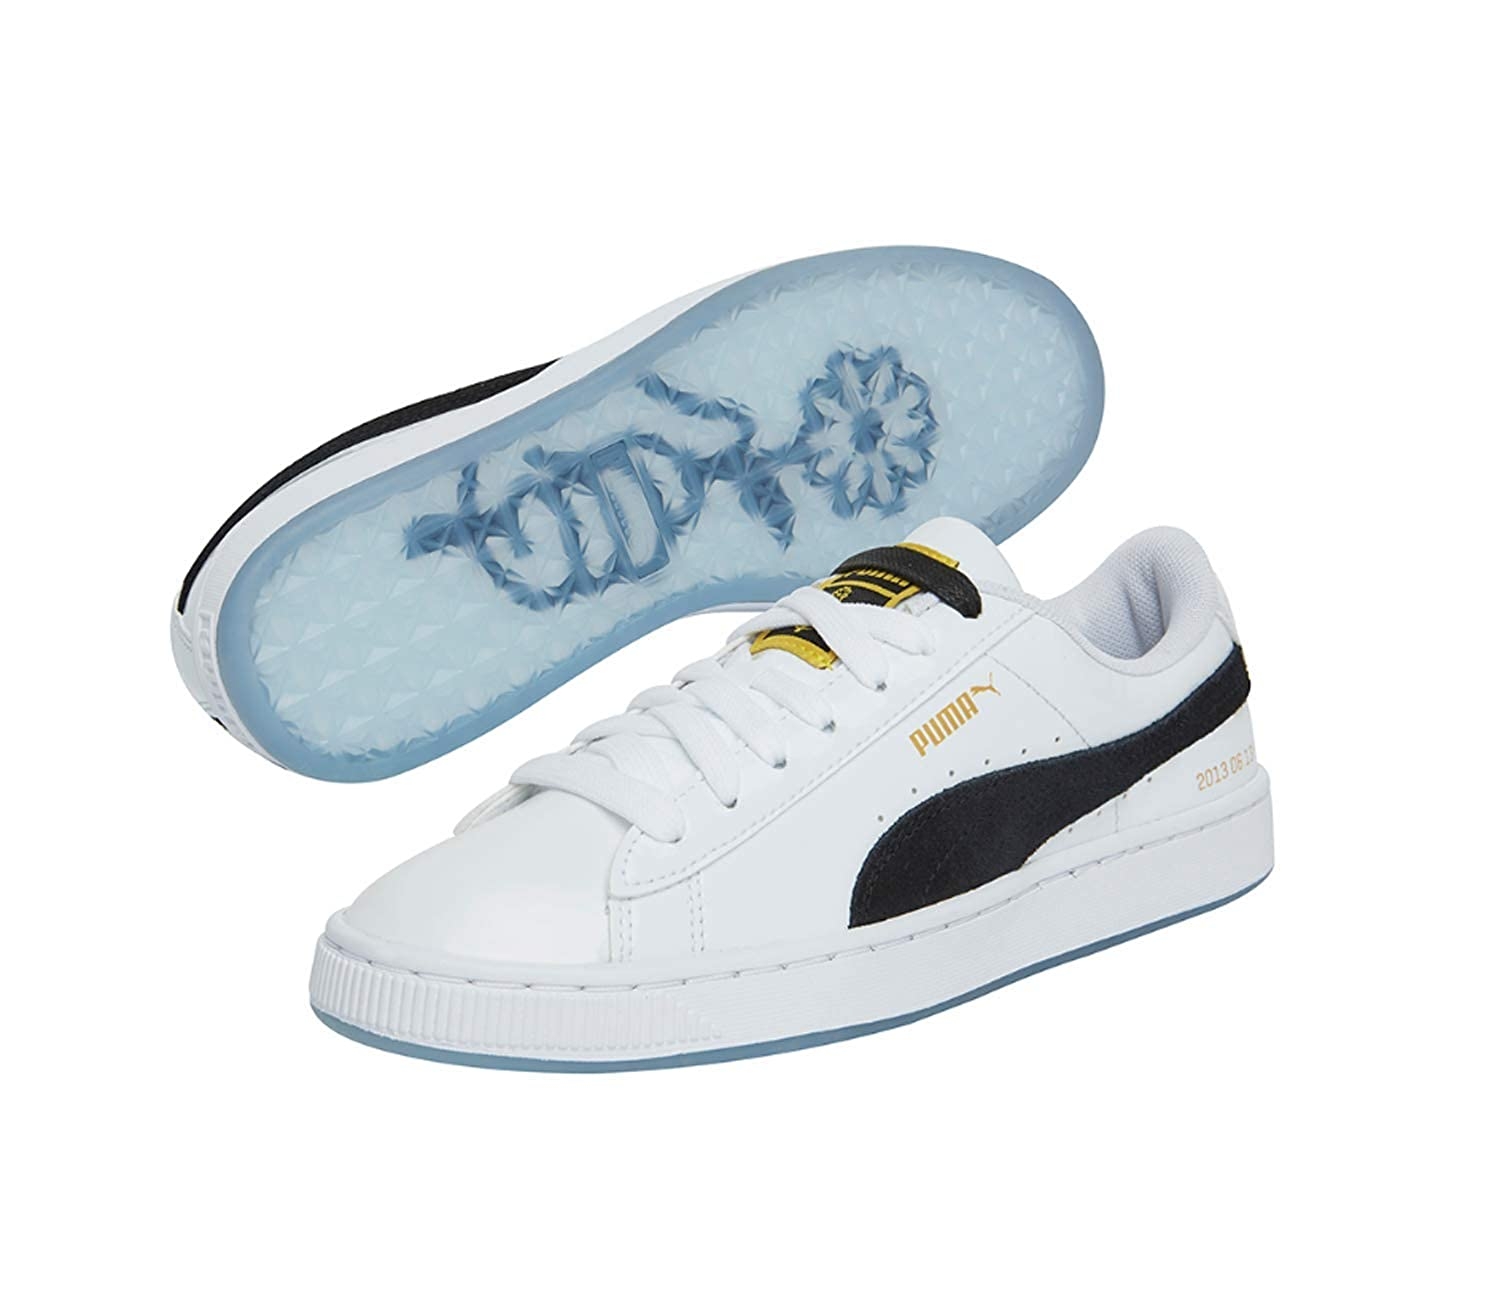 PUMAxBTS 3rd Collaboration_Puma Basket Patent Made by BTS (368278-01) PUMA x BTS